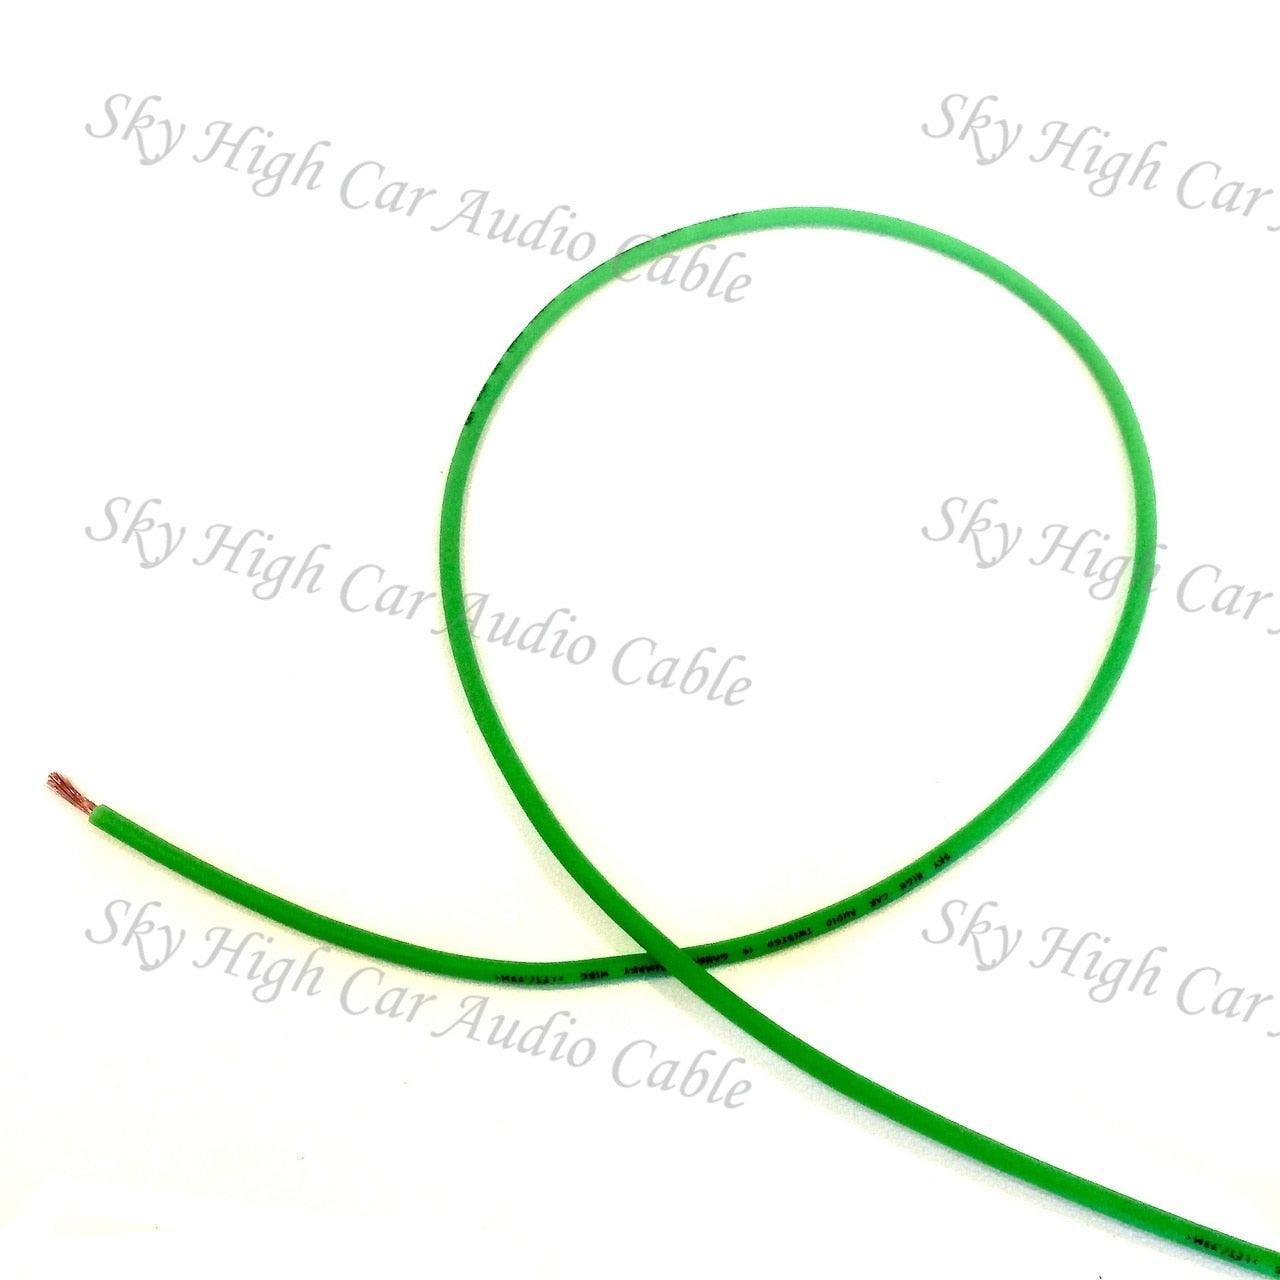 Sky High Car Audio 14 Gauge CCA Remote (Primary) Wire 25'